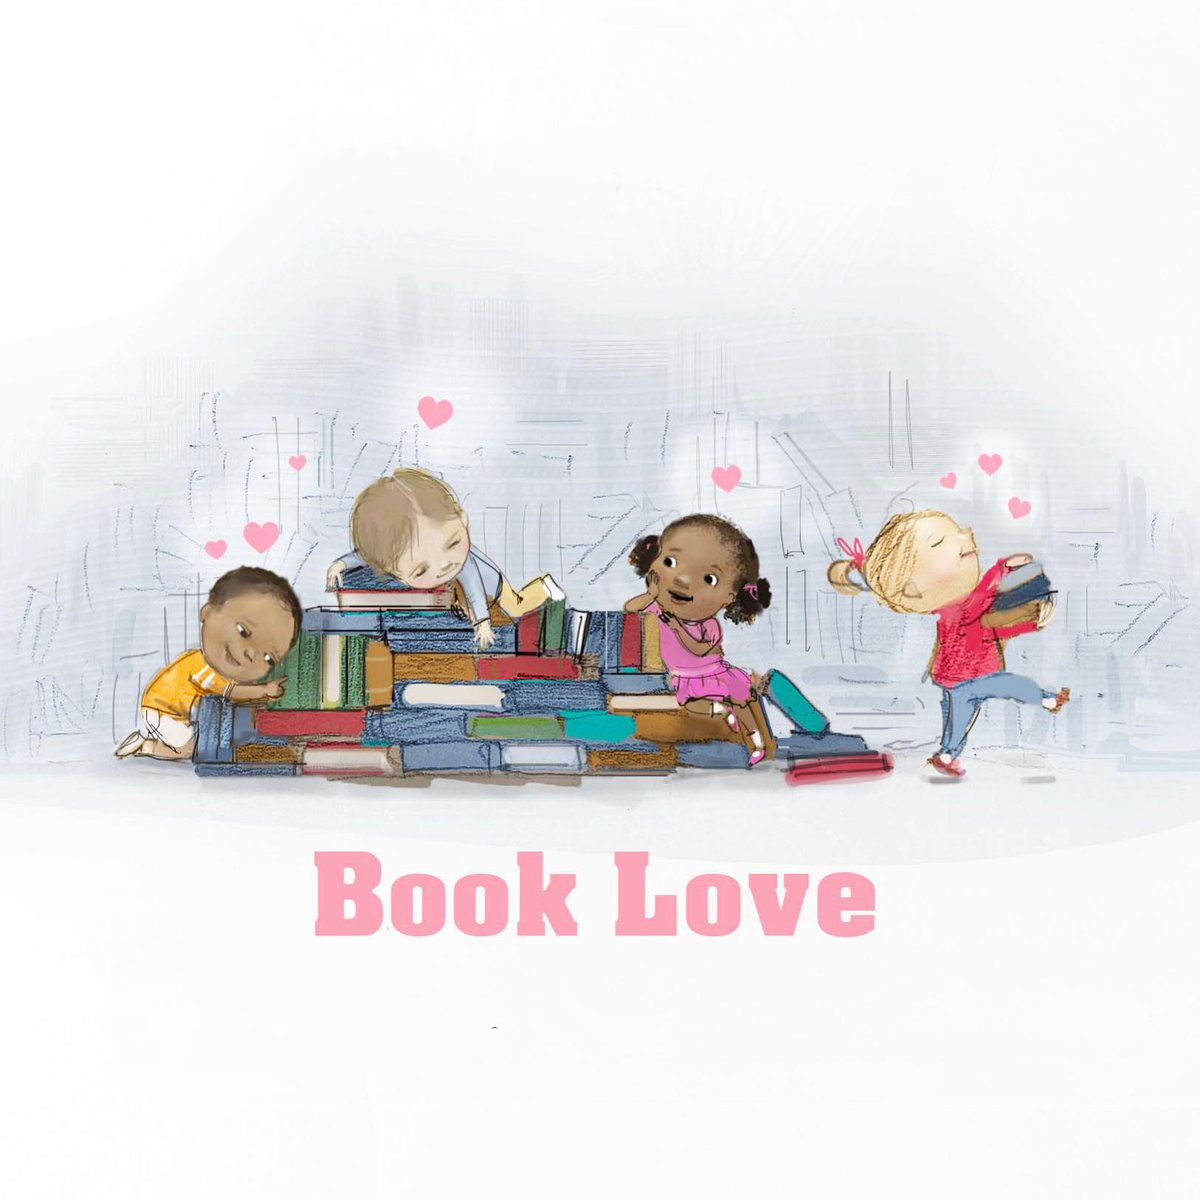 """All day I was thinking, """"I must find time to read all these beautiful books!!"""" I did squeeze in a picture to express the book joy. ❤️ There are just not enough hours in a day, sigh! #kidlit #ALAMW21 #ALAYMA #books #booklove #kidlitart #illustration #artistsoninstagram"""